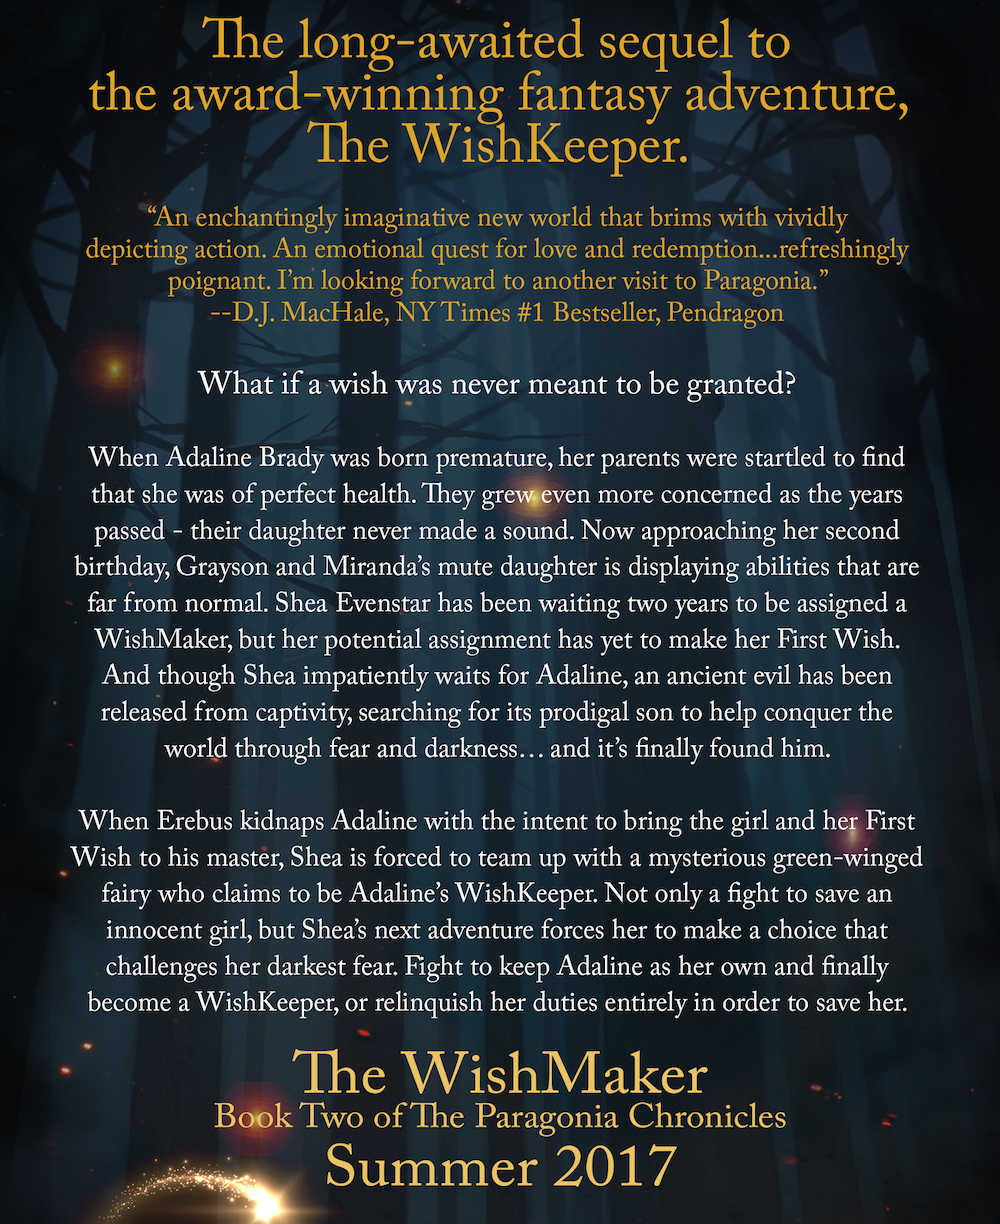 wishmaker-description-promo